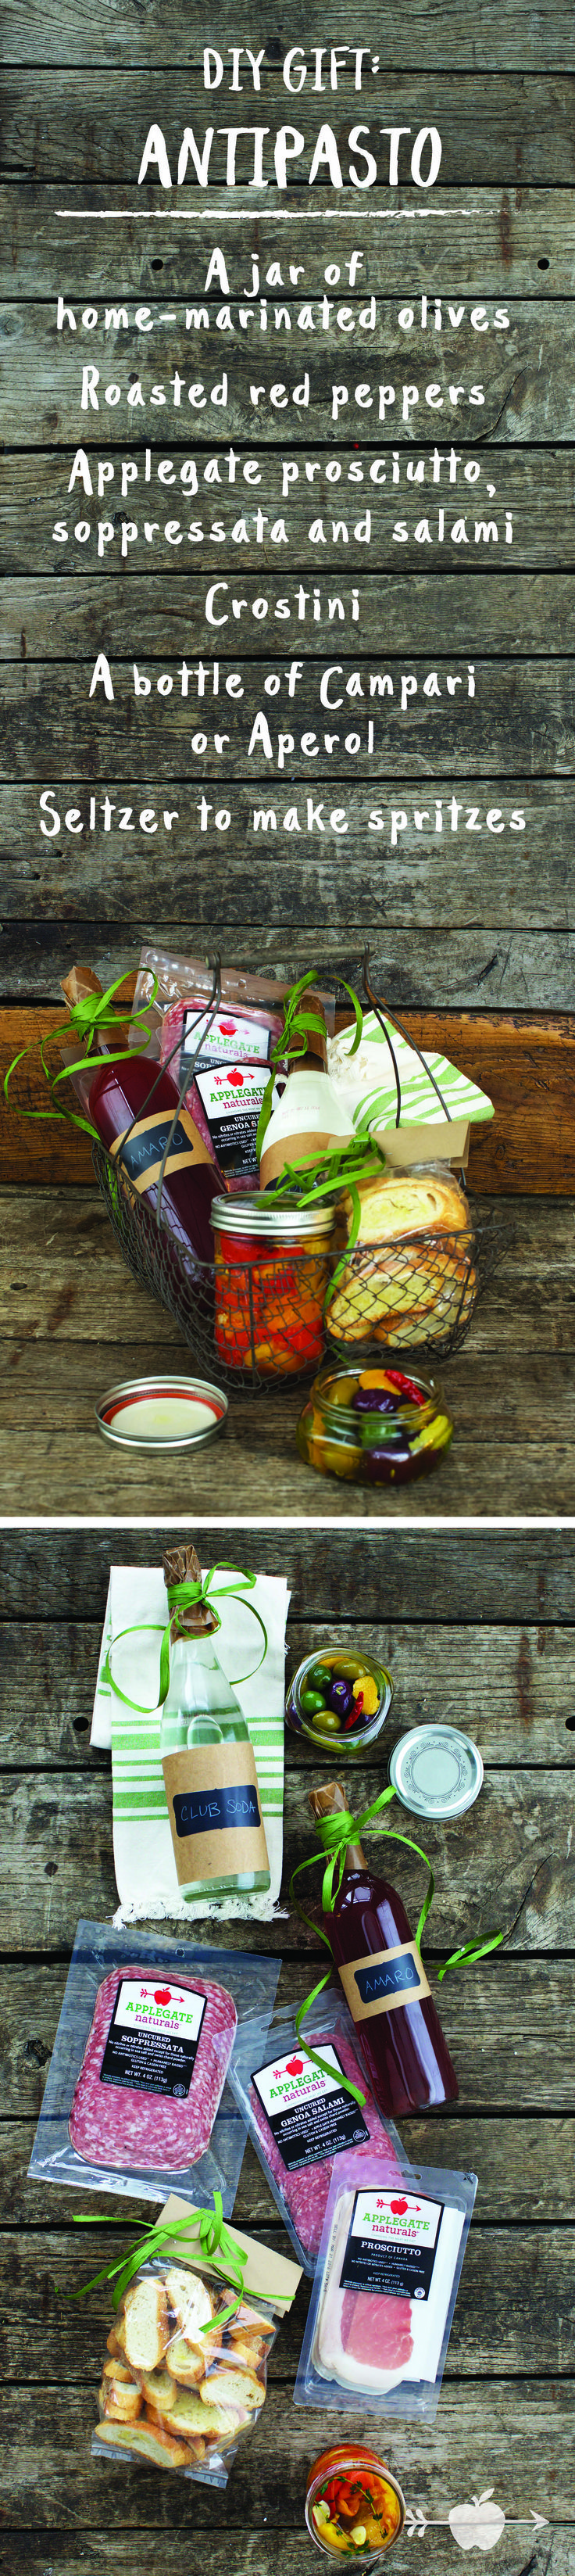 #DIY Gift Basket: The Instant Antipasto. Click to see our delicious recipes for marinated olives and roasted red peppers, and learn how to put the gift together!